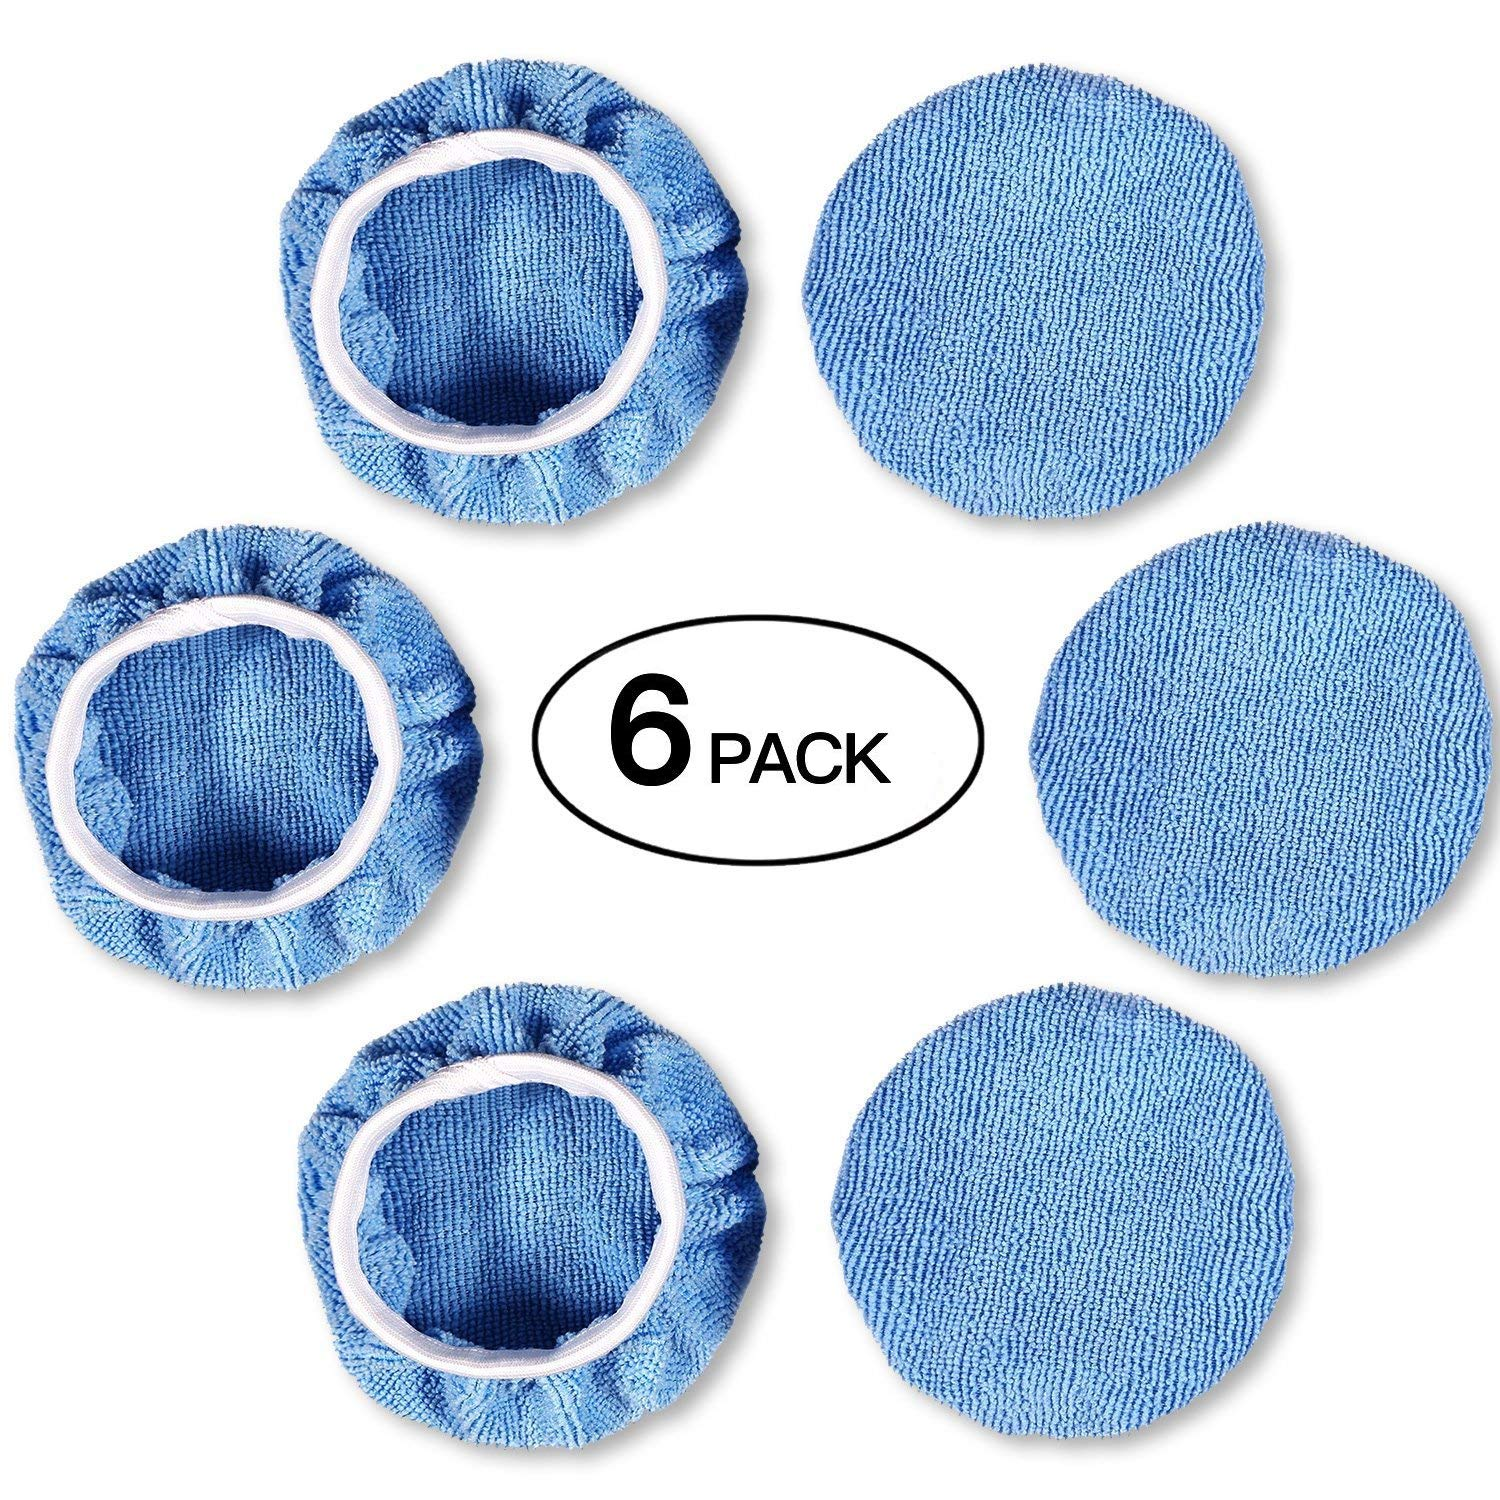 Zoiibuy Bonnet de polissage, Lot de 6 Kit Auto Polissage en Laine Tapis de Polissage Cirage pour Voiture (12,5-15CM)